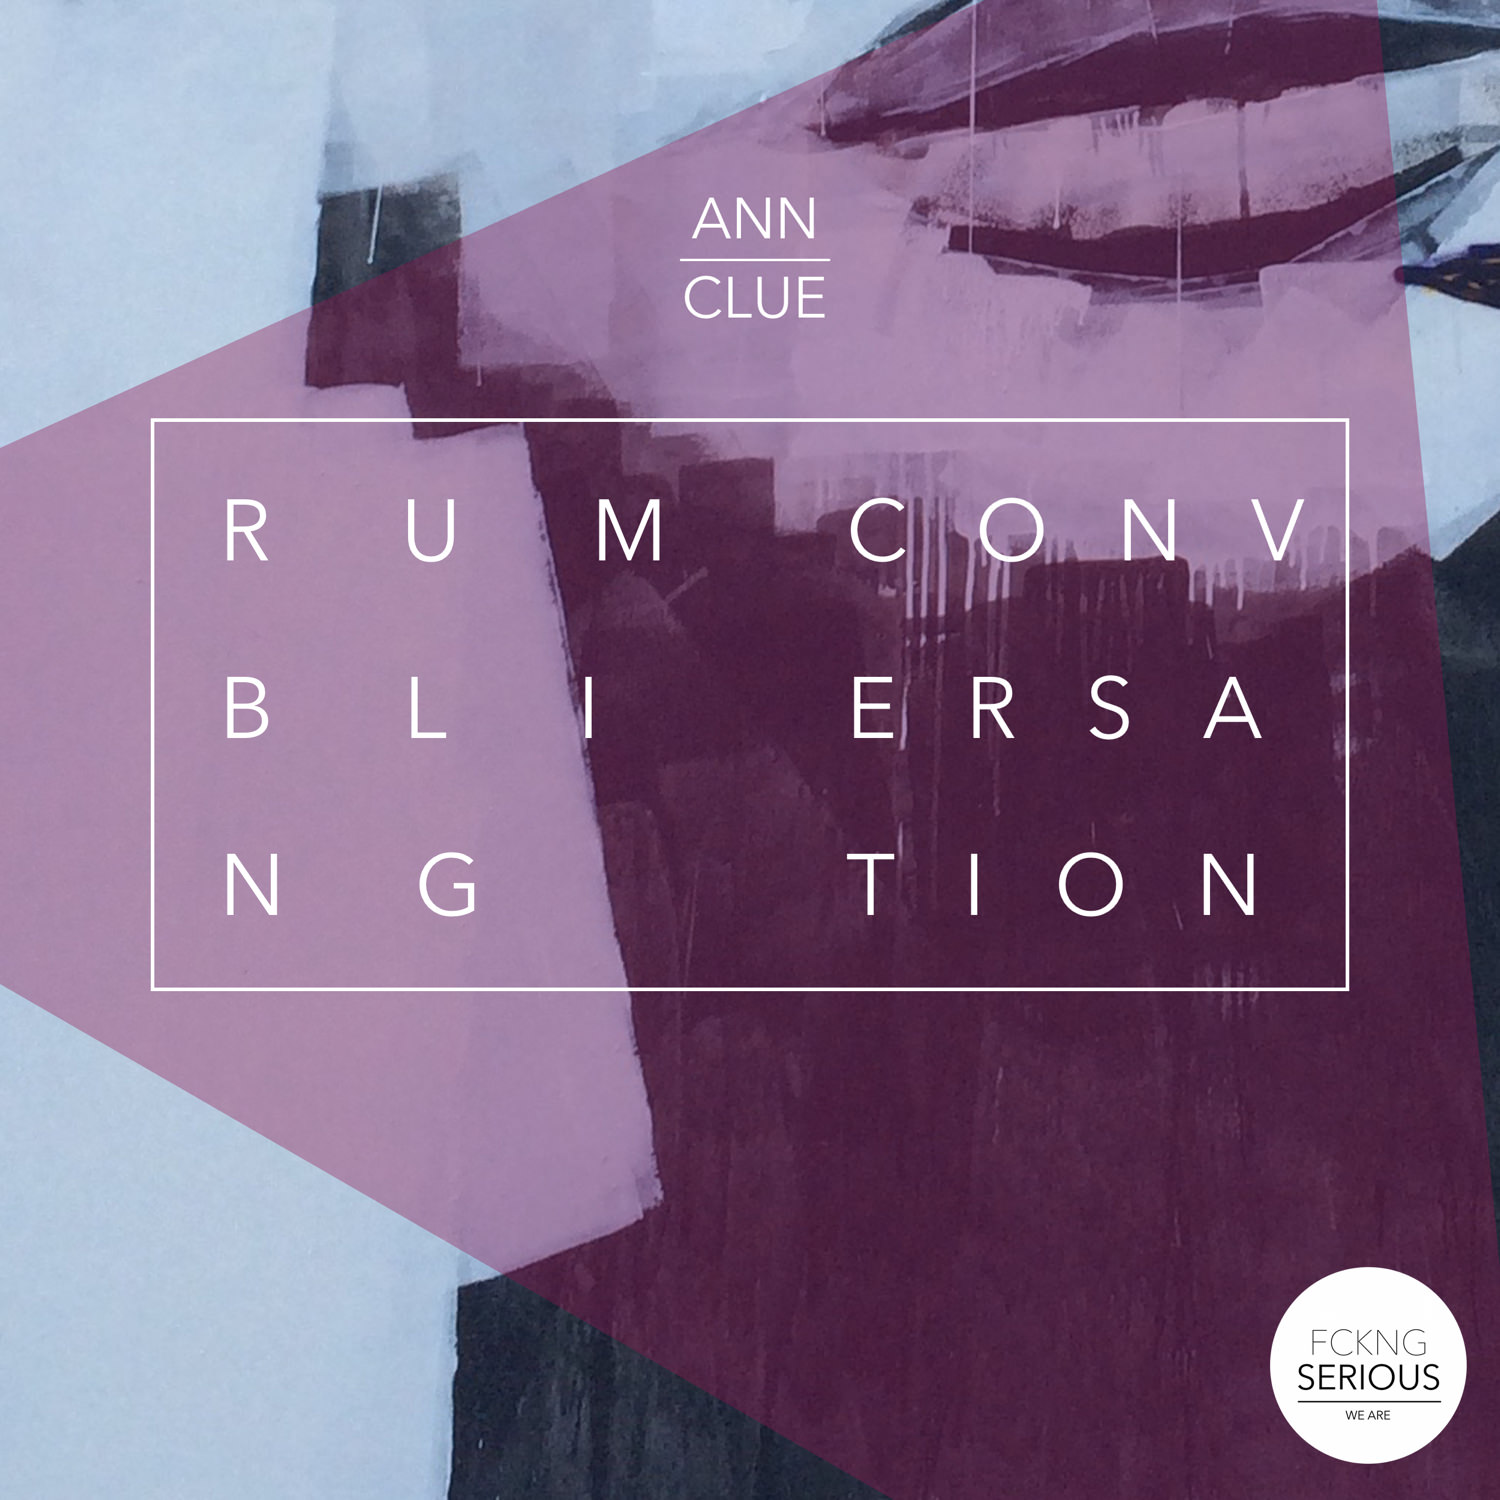 """RUMBLING CONVERSATION - ANN CLUEShe is smart, determined and also a very nice producer. FCKNG SERIOUS is really proud to announce that Ann Clue is coming up with her first solo EP called """"Rumbling Conversation"""". Check it out! You gonna love it.__SpotifyApple musicBeatport"""